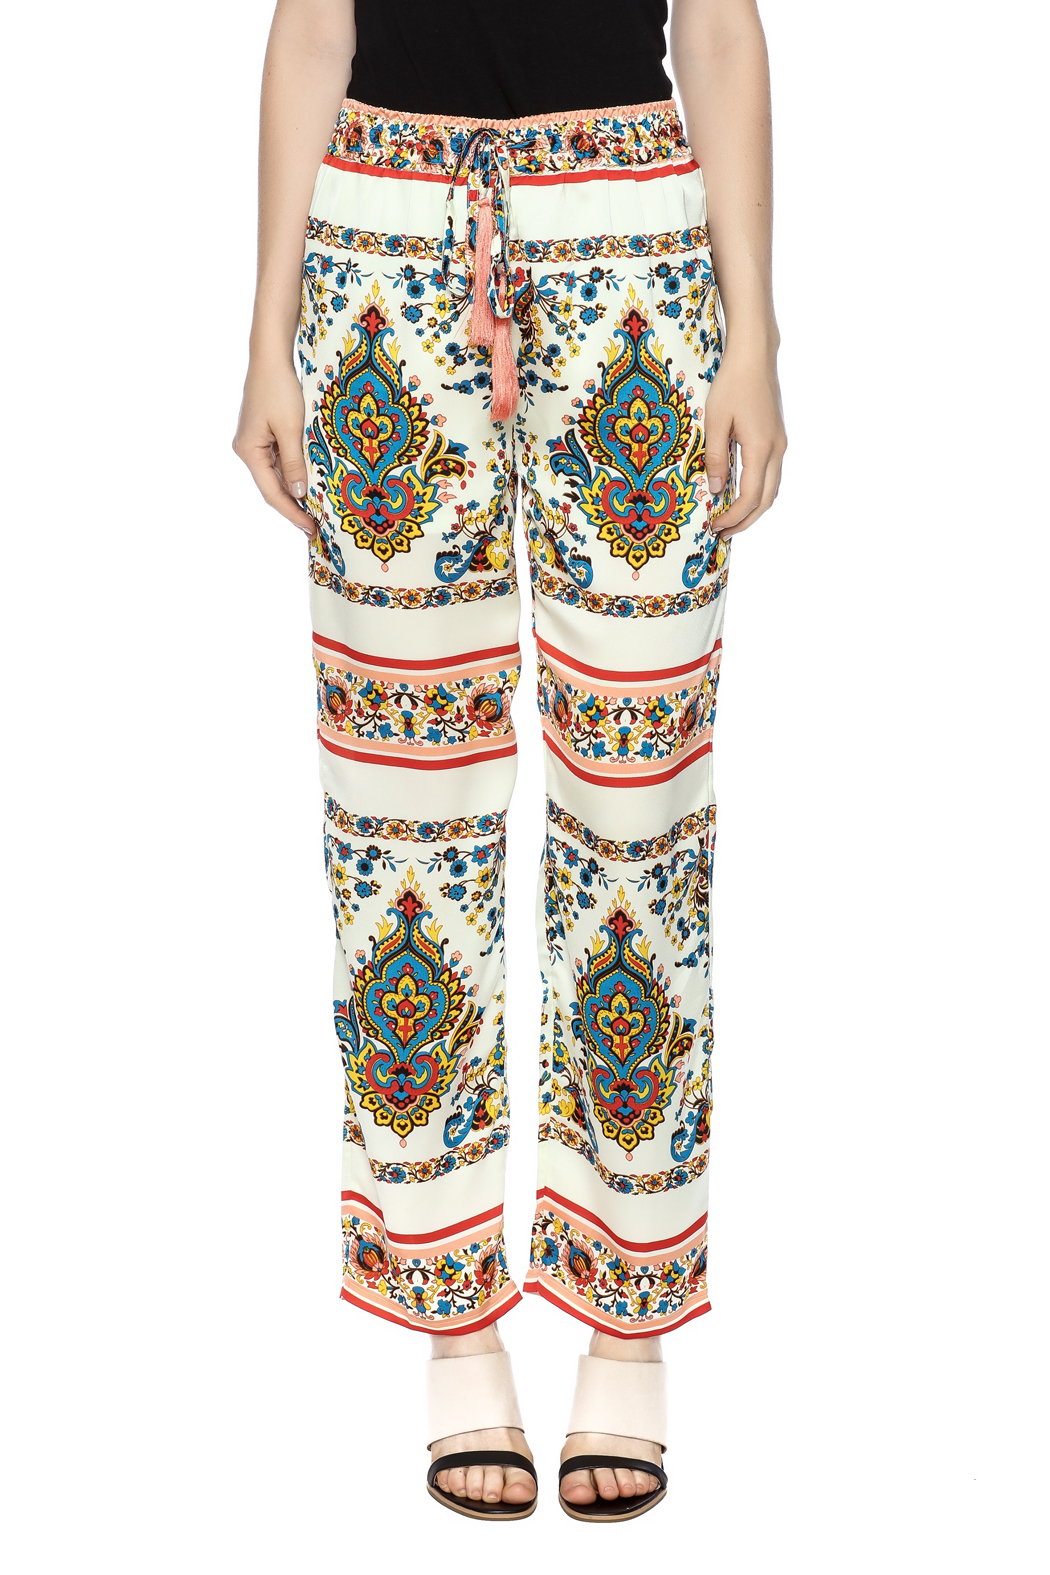 KAS New York Print Drawstring Pant - Side Cropped Image